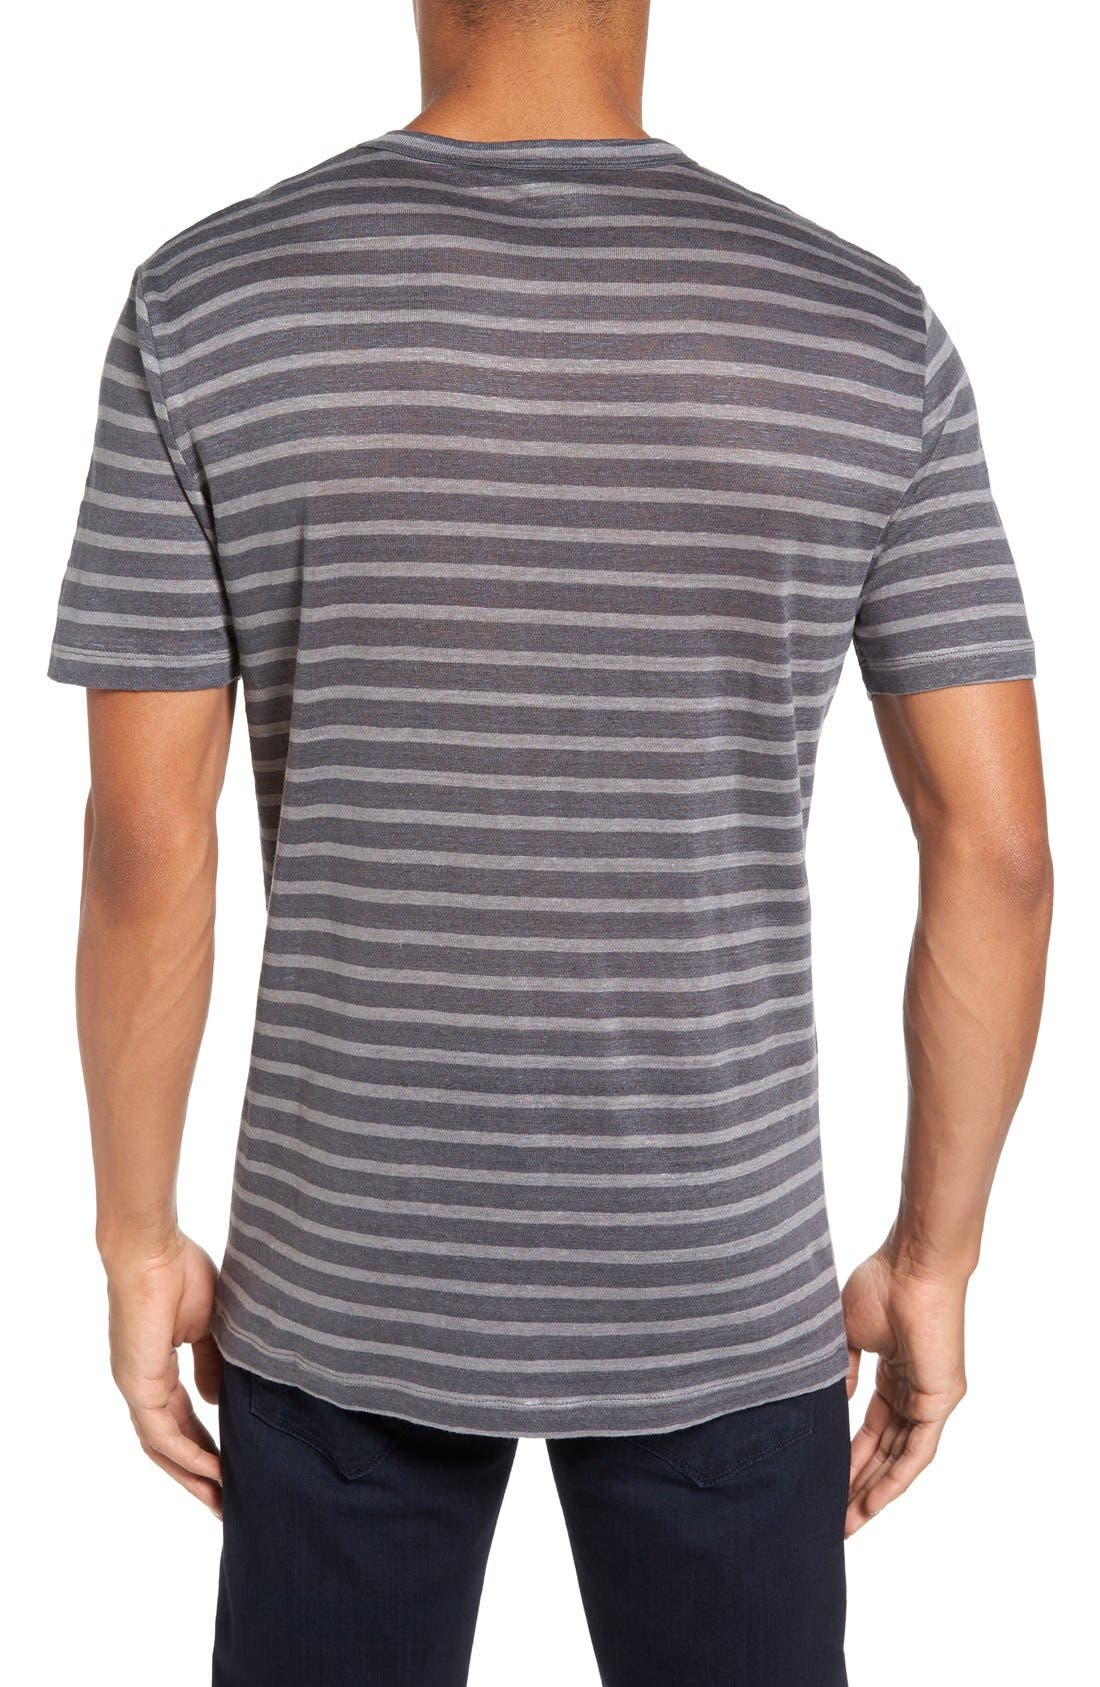 Alternate Image 2  - Slate & Stone Stripe Linen T-Shirt